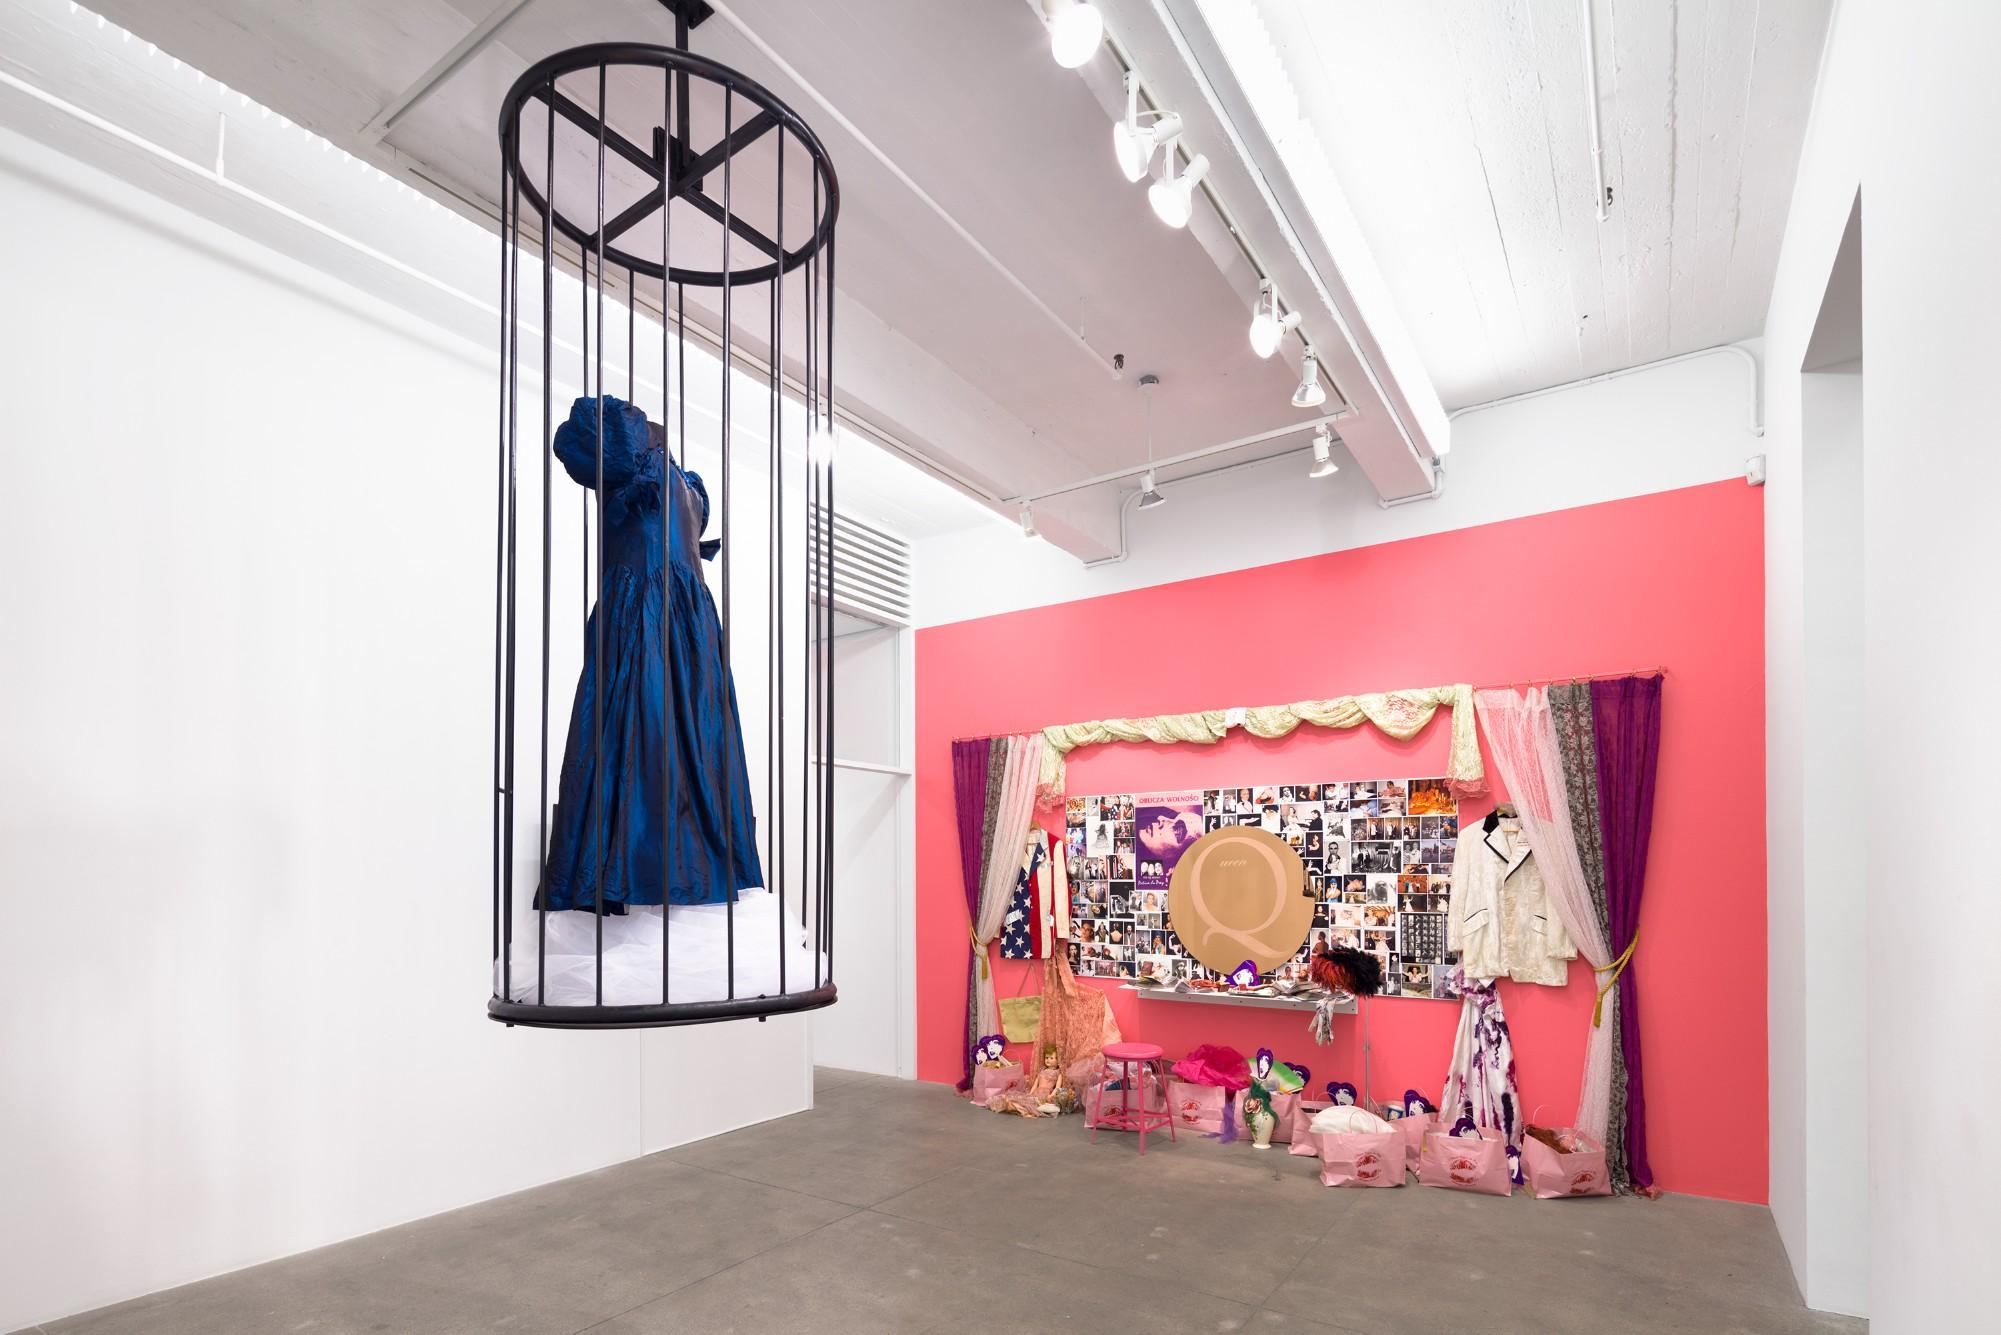 Installation view, Hunter Reynolds' From Drag to Dervish at P·P·O·W, New York, now available to view online.